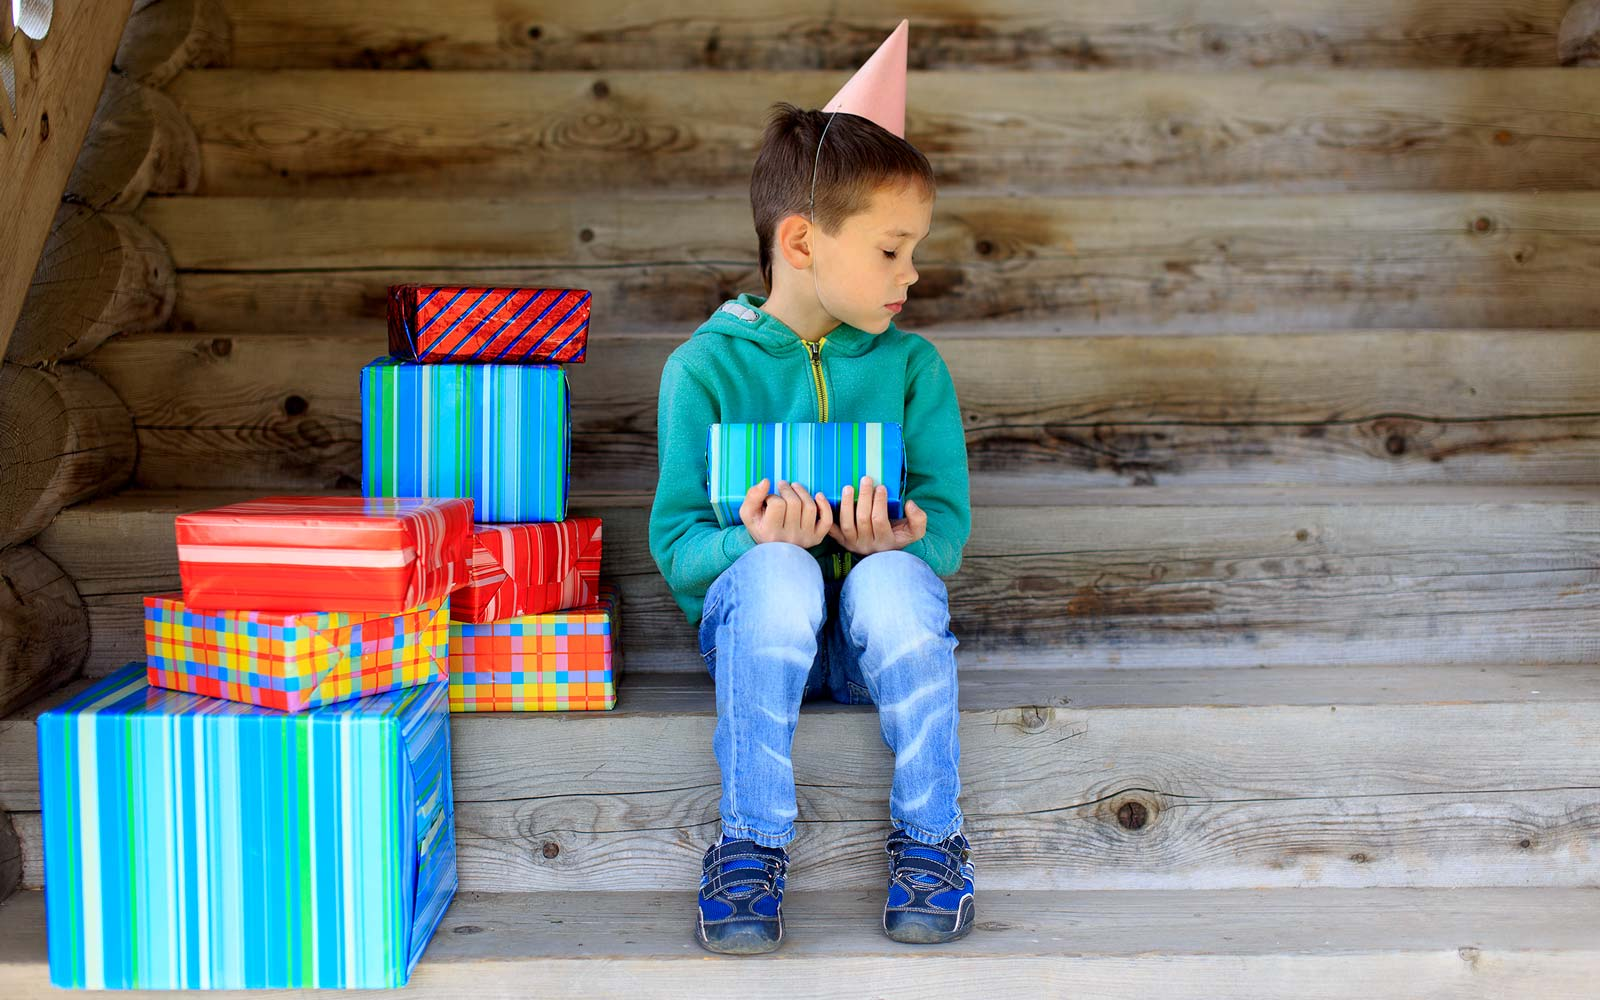 6-year-old-boy Celebrated His Birthday Alone – Now Everyone Around the World Is Wishing Him a Happy Birthday